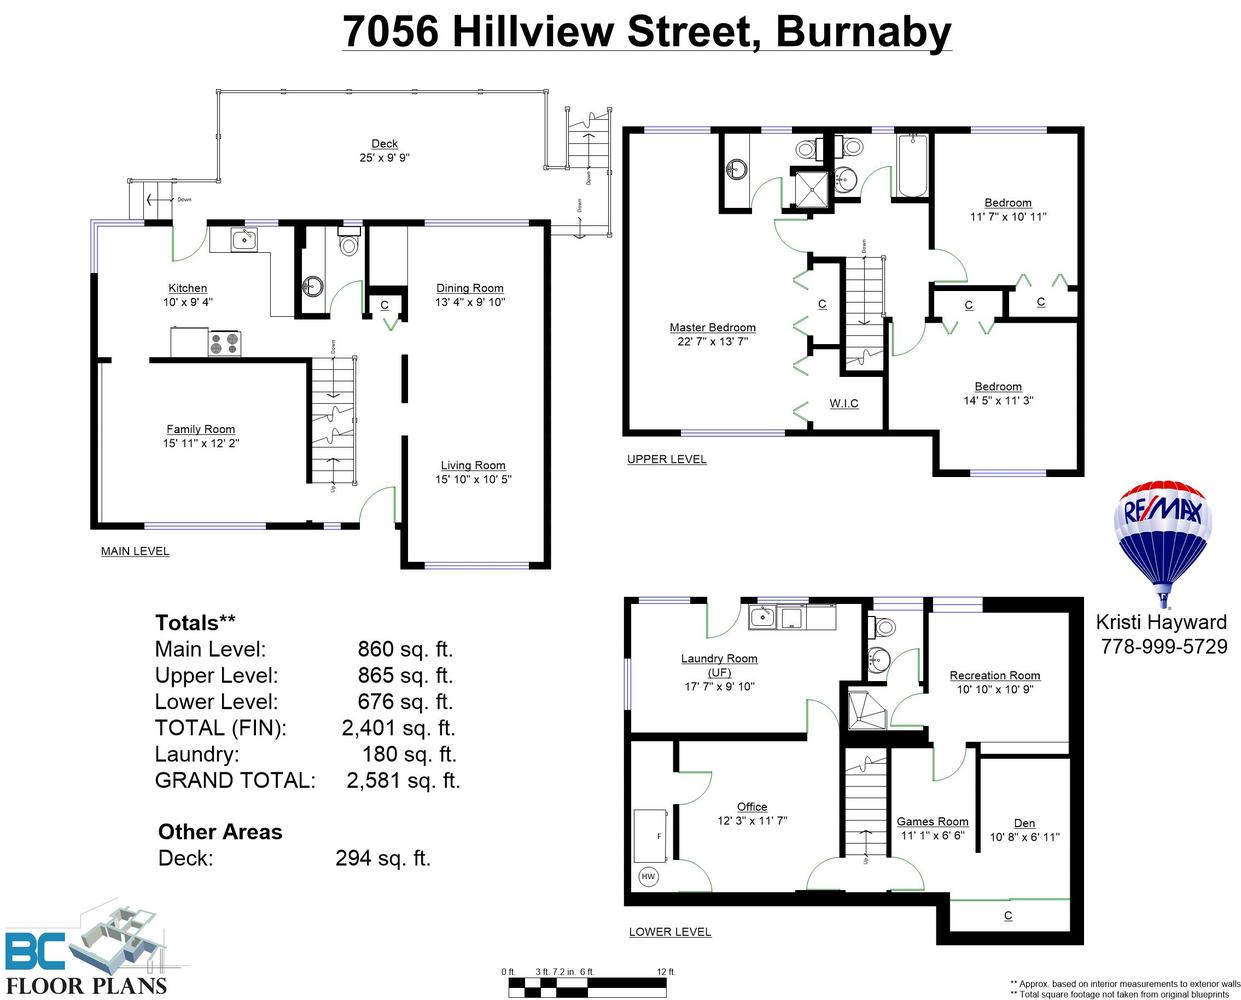 7056 Hillview St Burnaby Bc V5a 1y3 Canada Virtual Tour